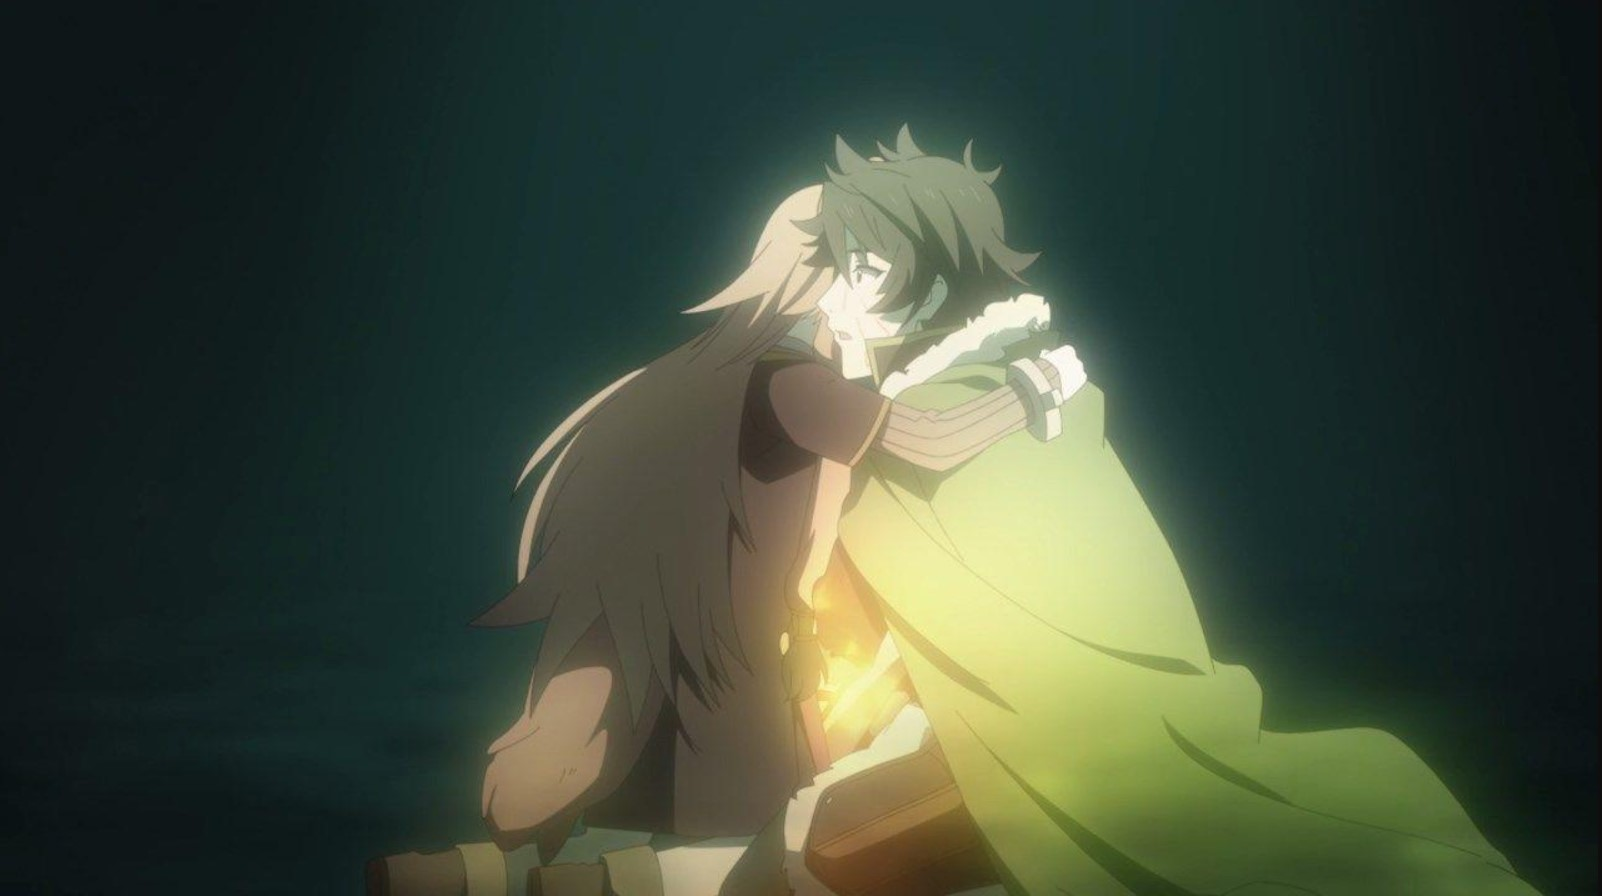 The Rising of the Shield Hero- anime similar to redo of healer